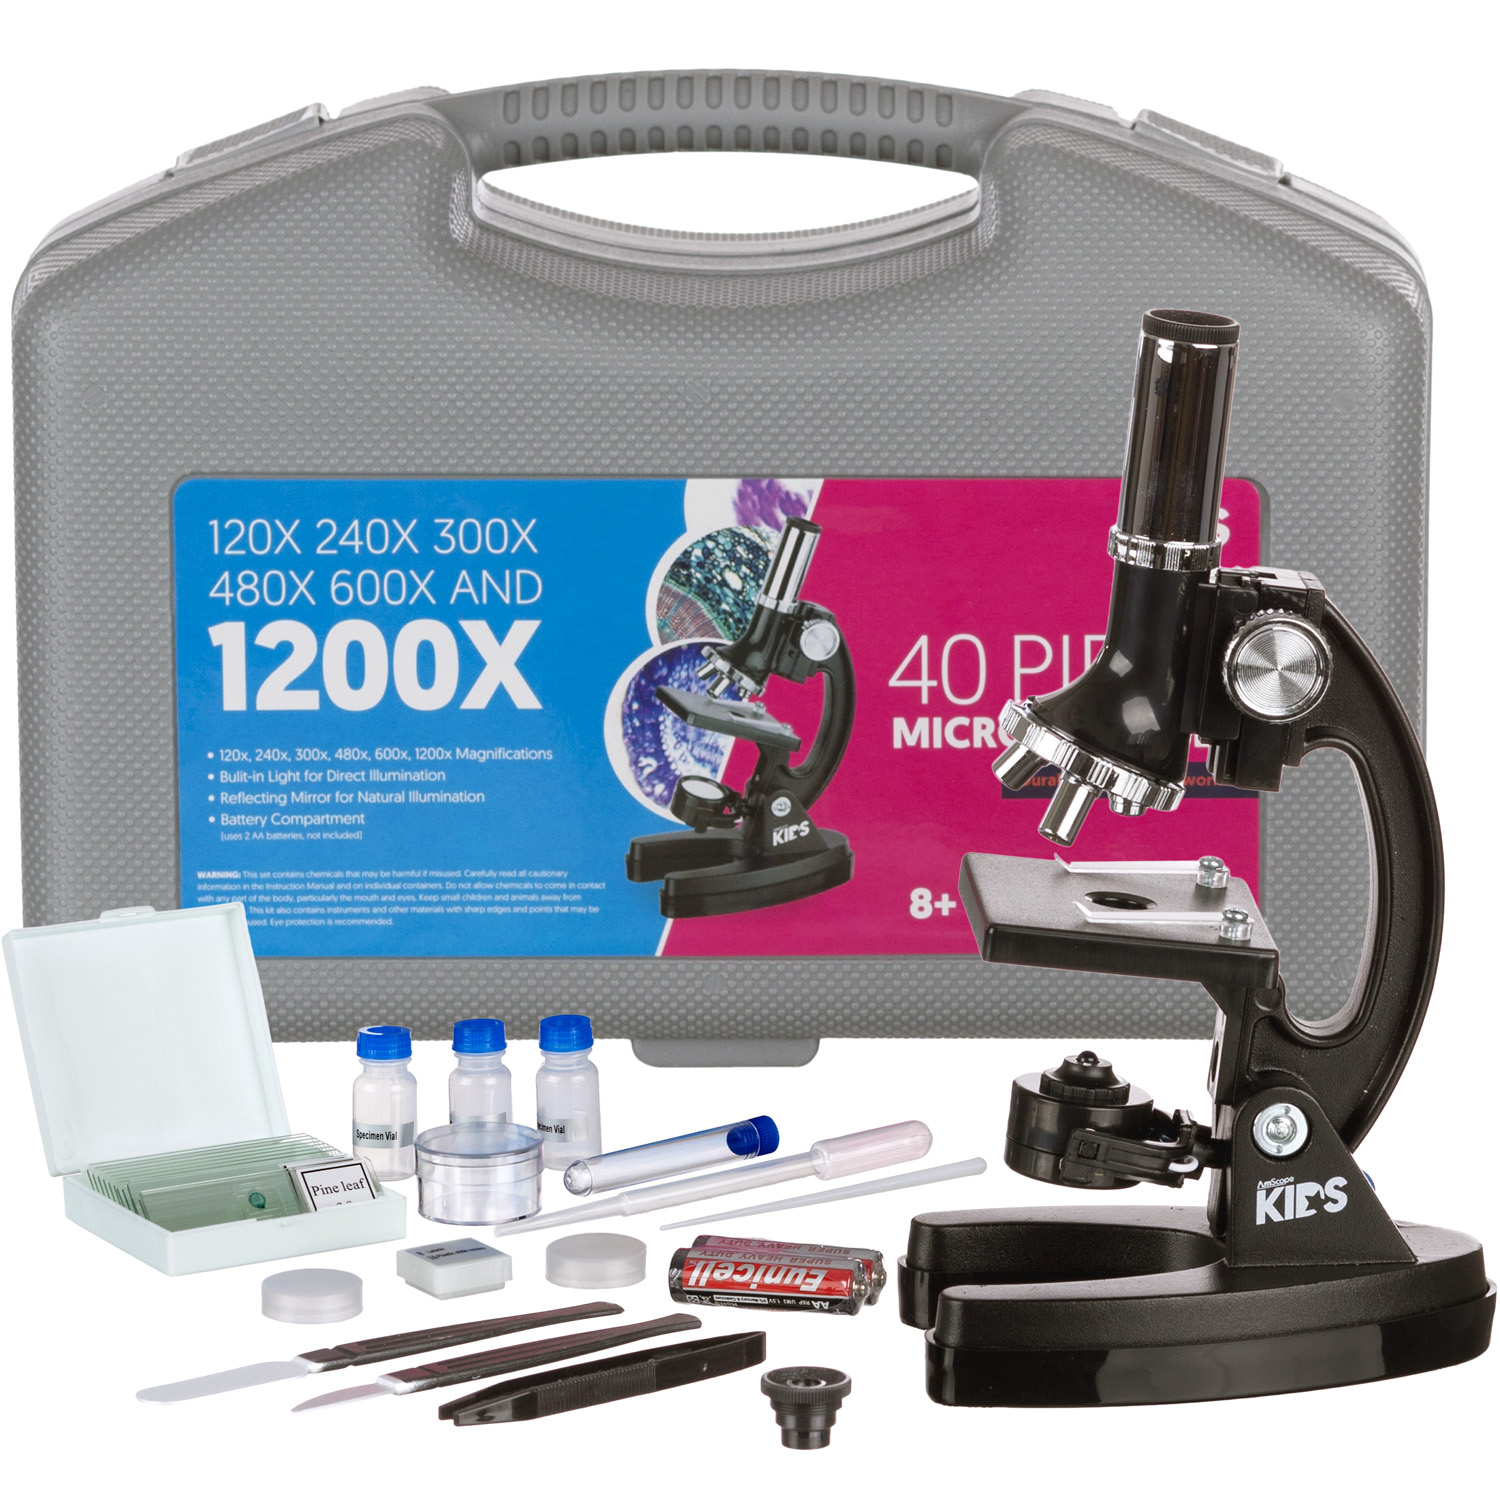 AMSCOPE-KIDS 120X-240X-300X-480X-600X-1200X Metal Arm Educational Biological Kids Microscope Kit